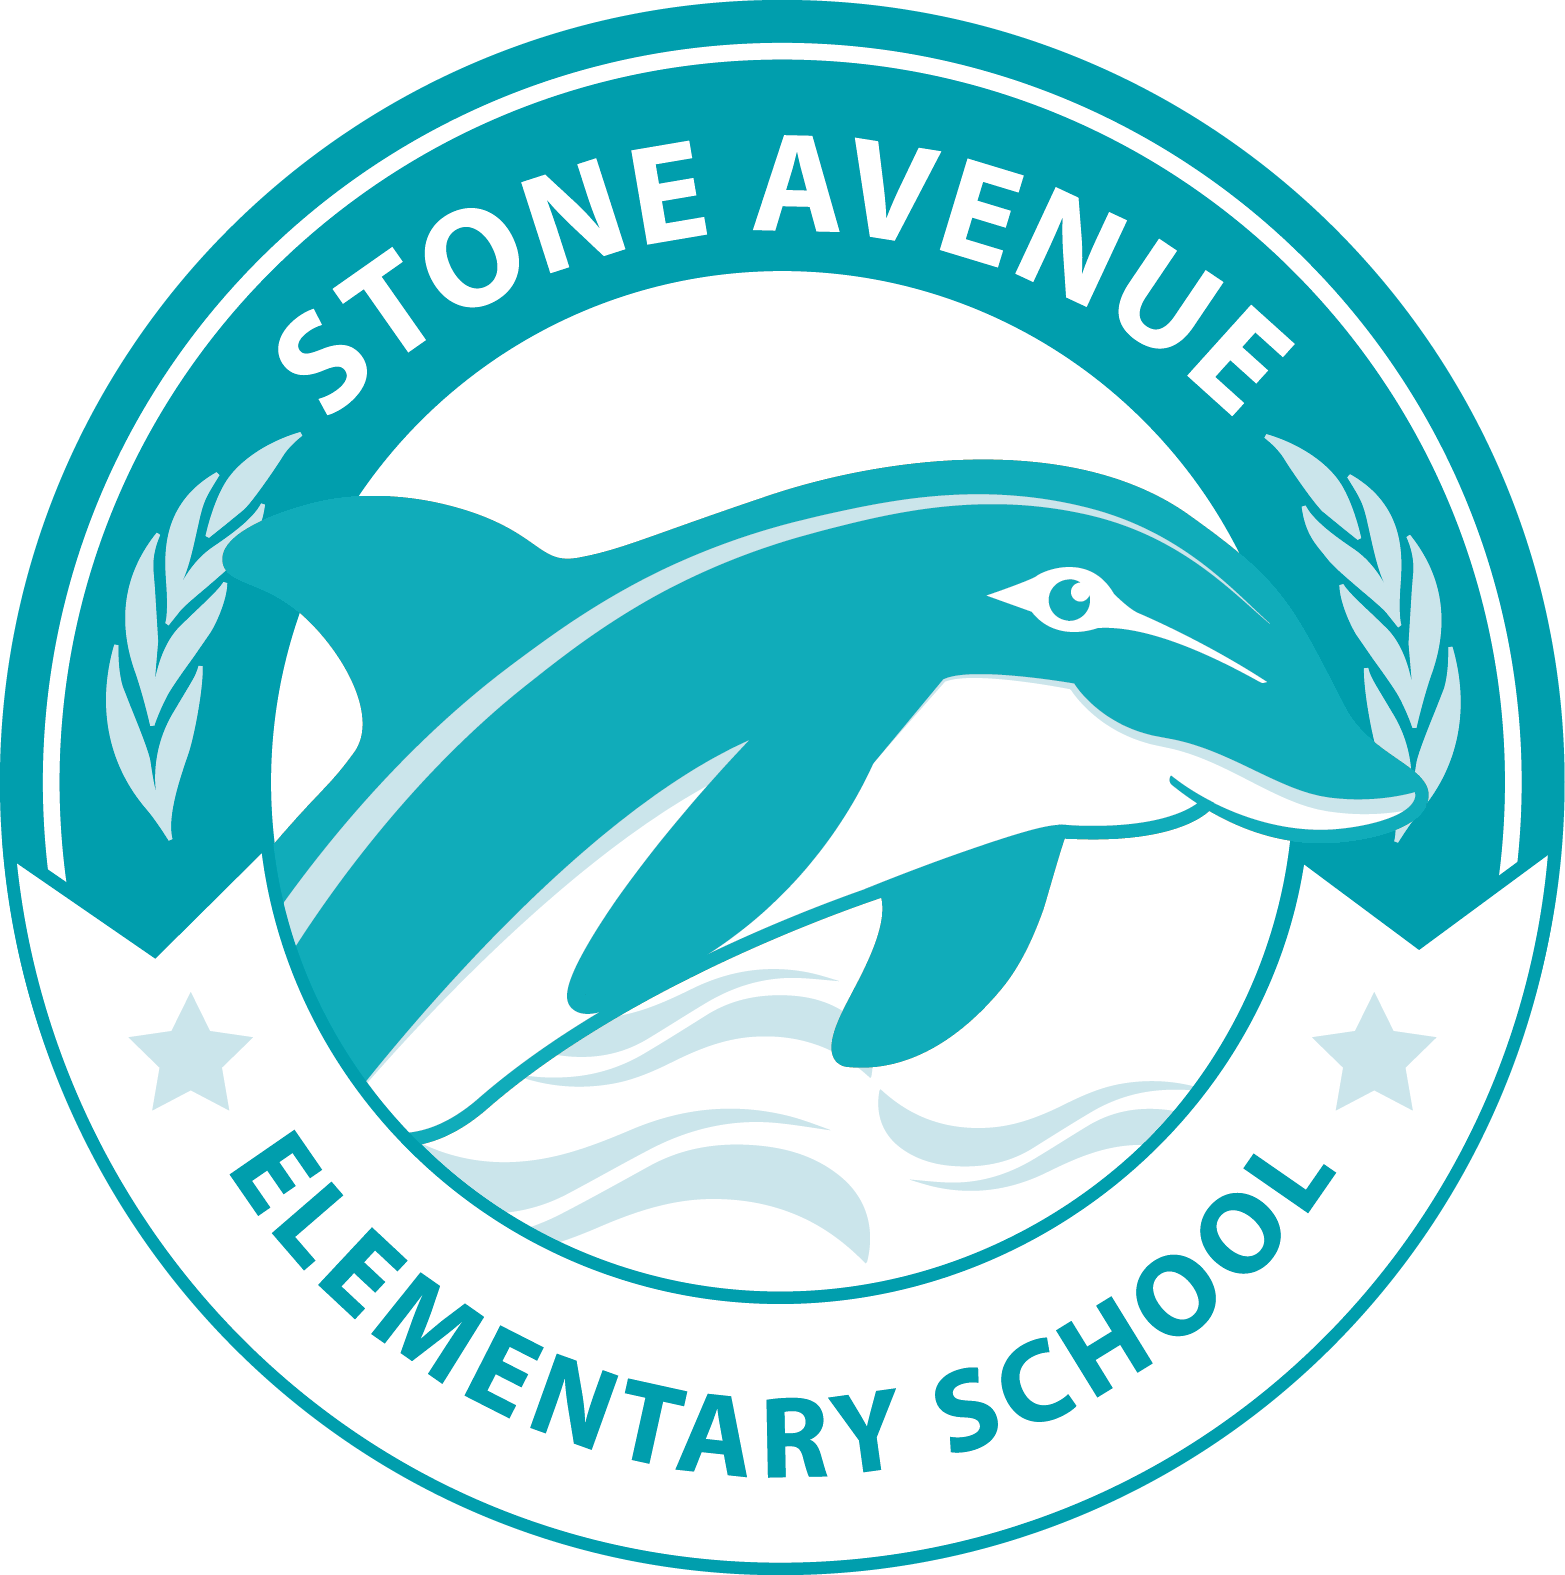 Stone Ave logo.png